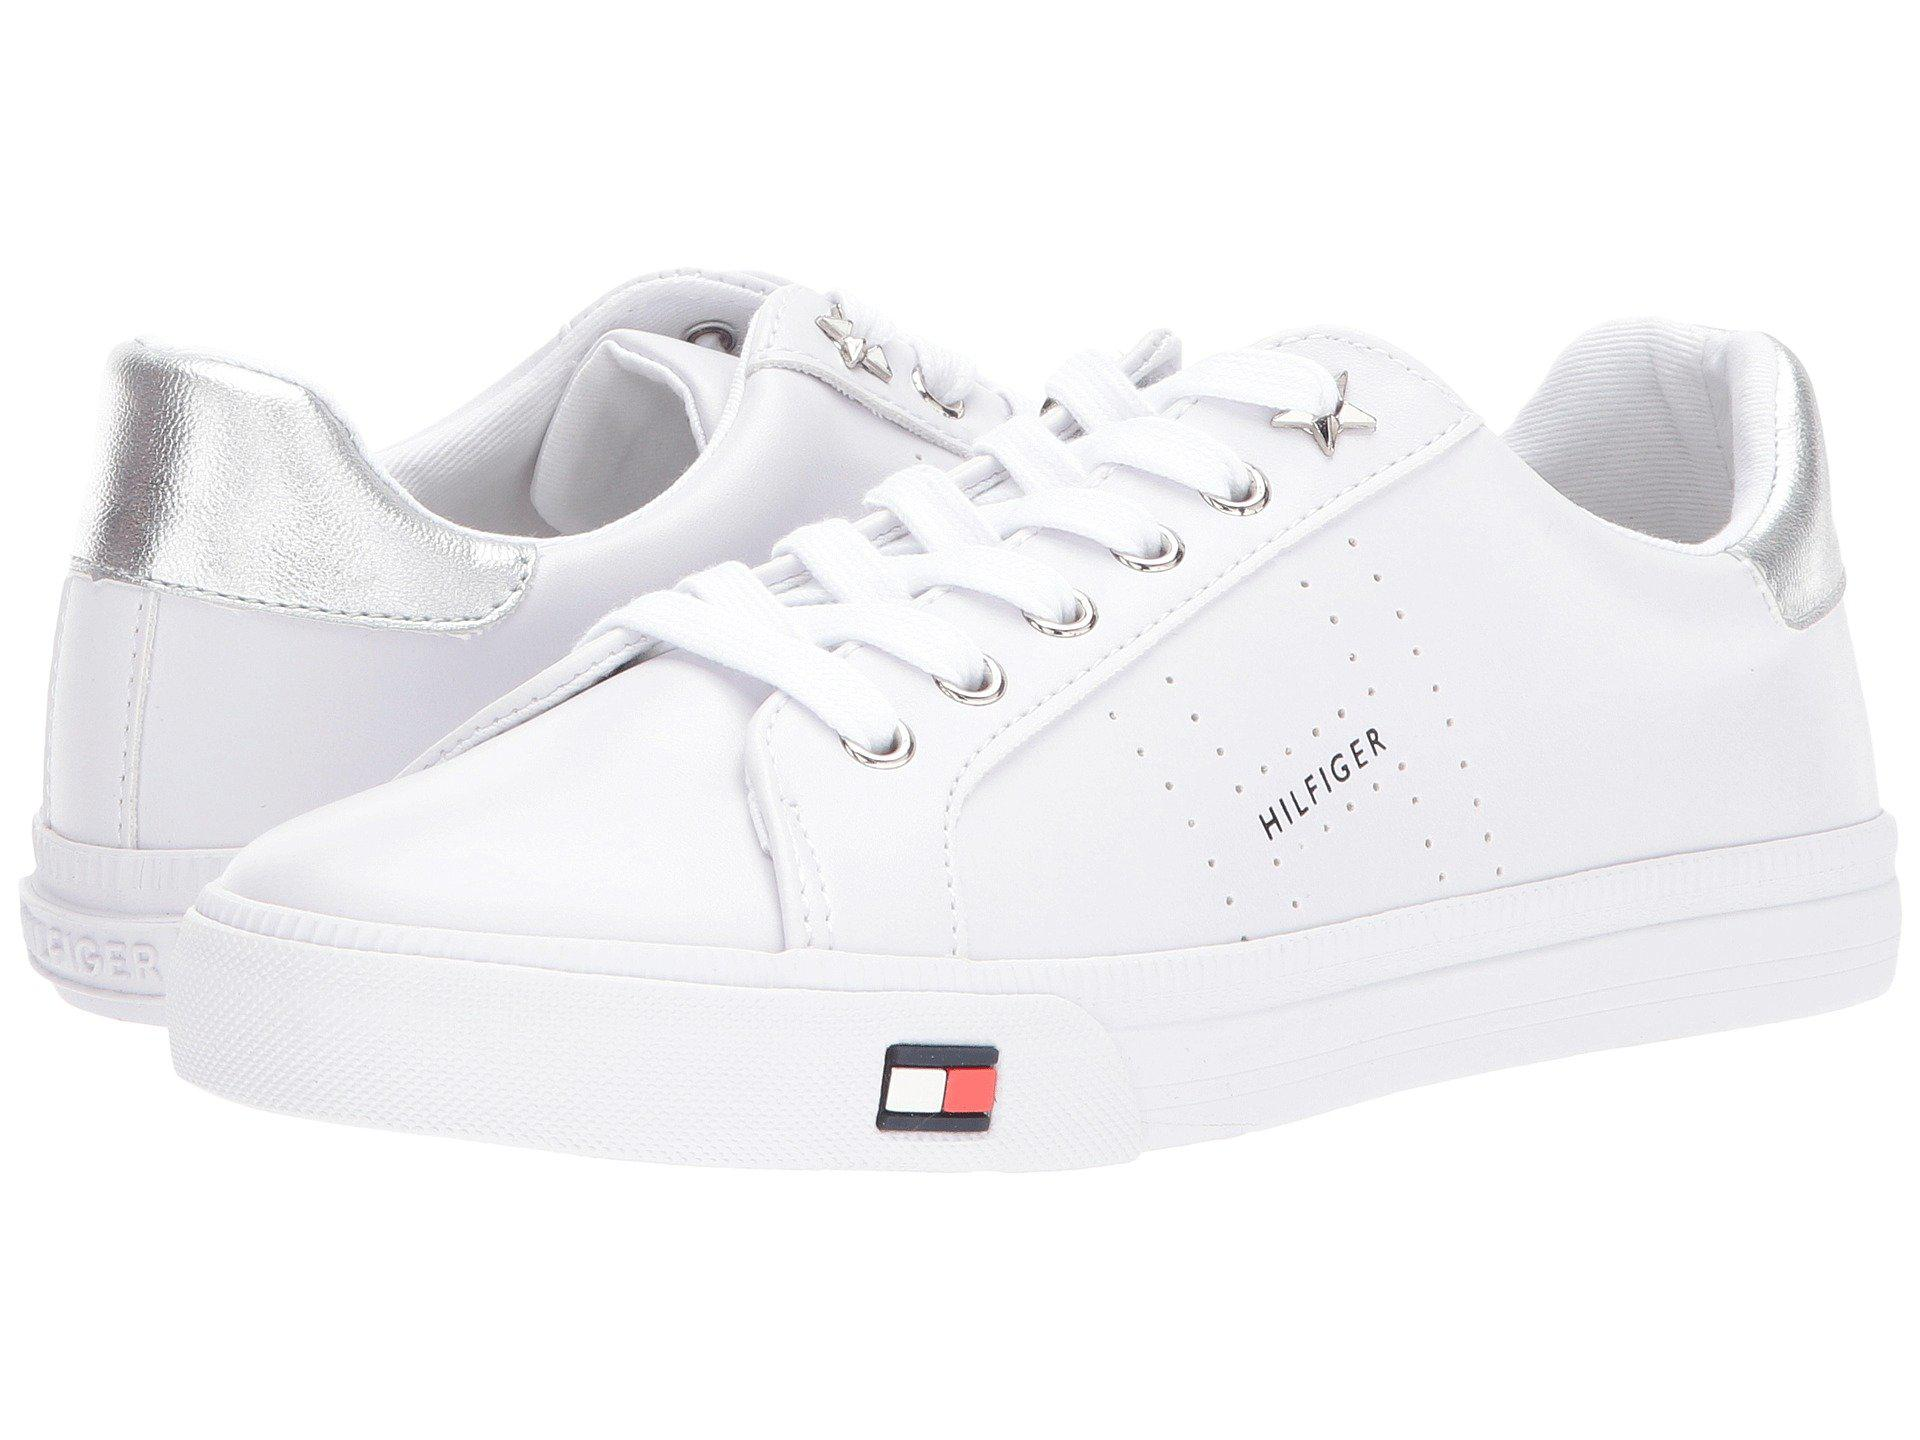 66b8827d Tommy Hilfiger Lustery in White - Lyst